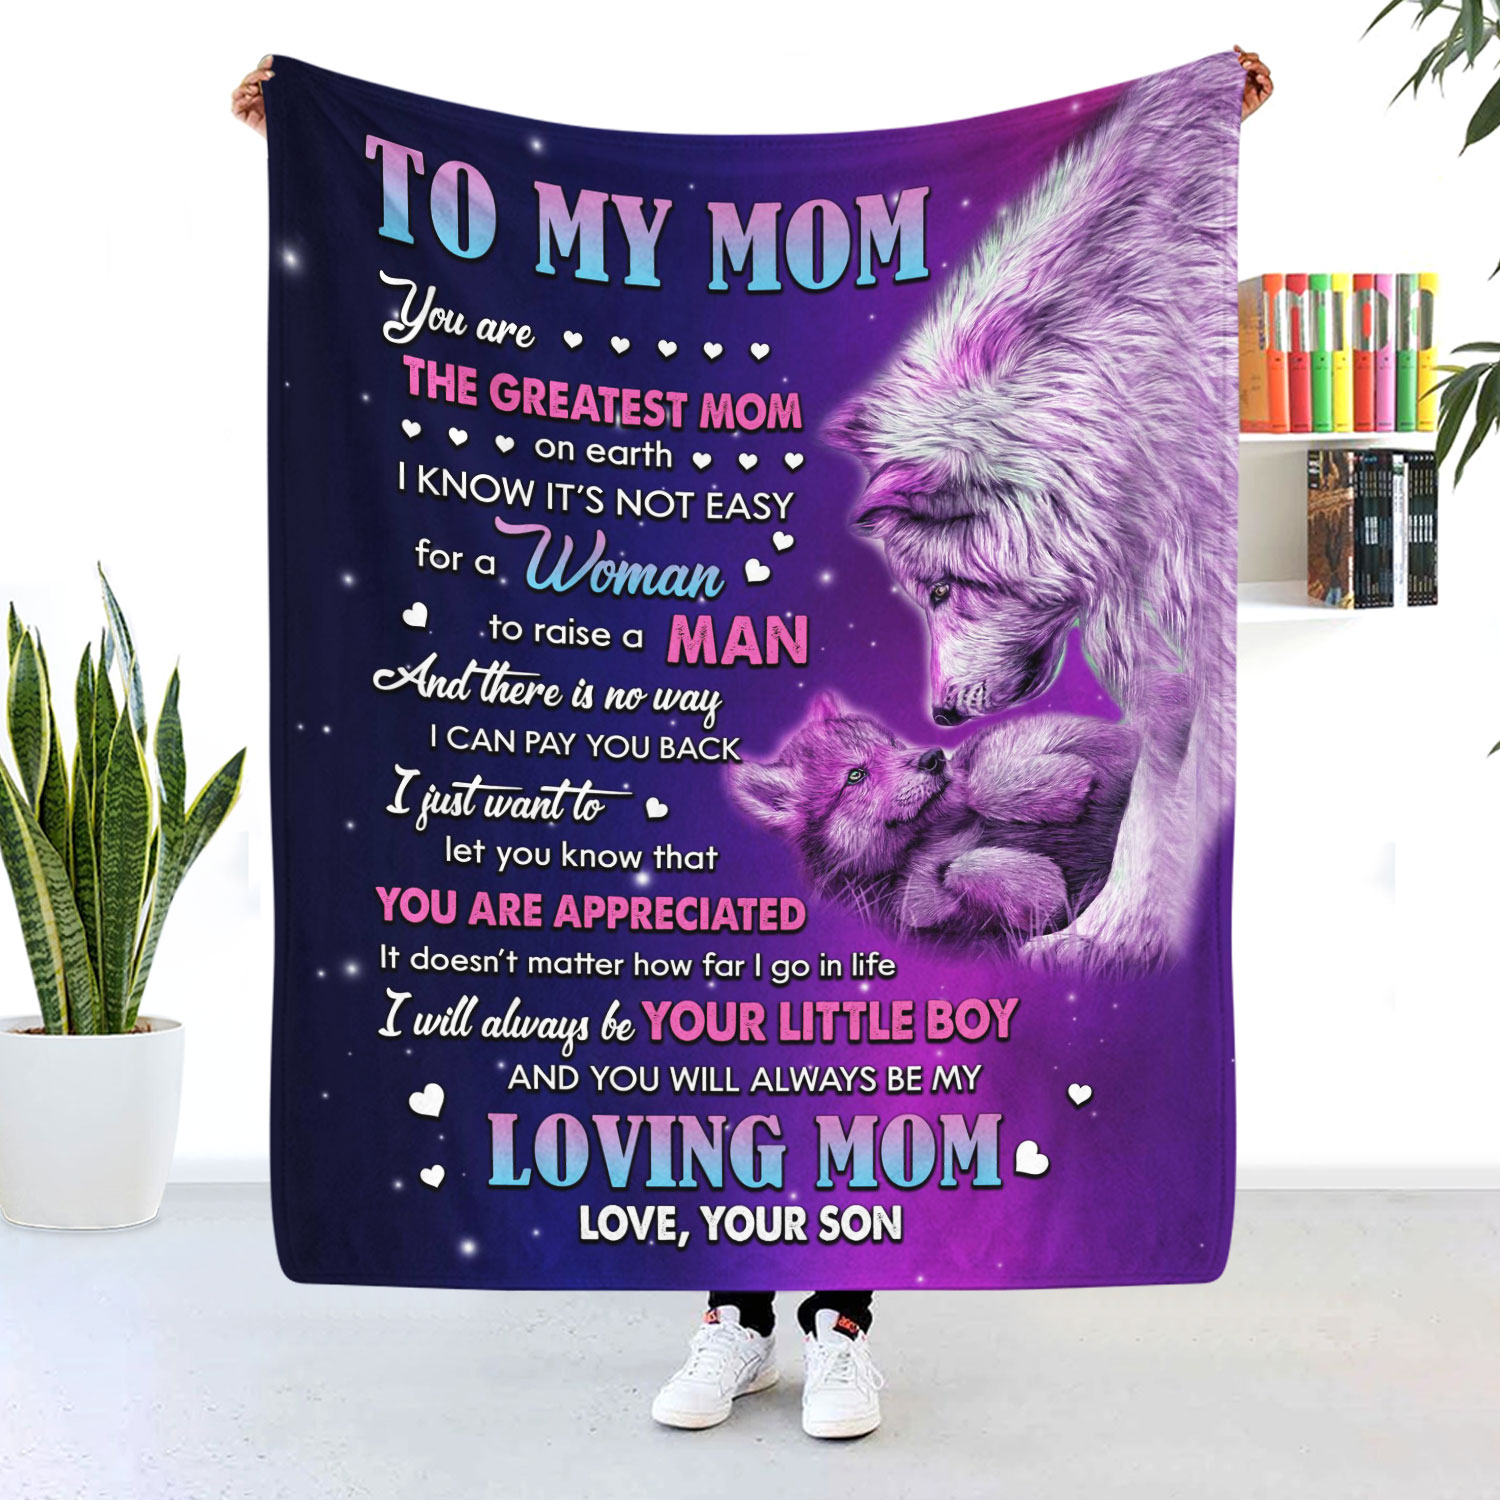 To My Mom You Are The Greatest Mom On Earth Blanket